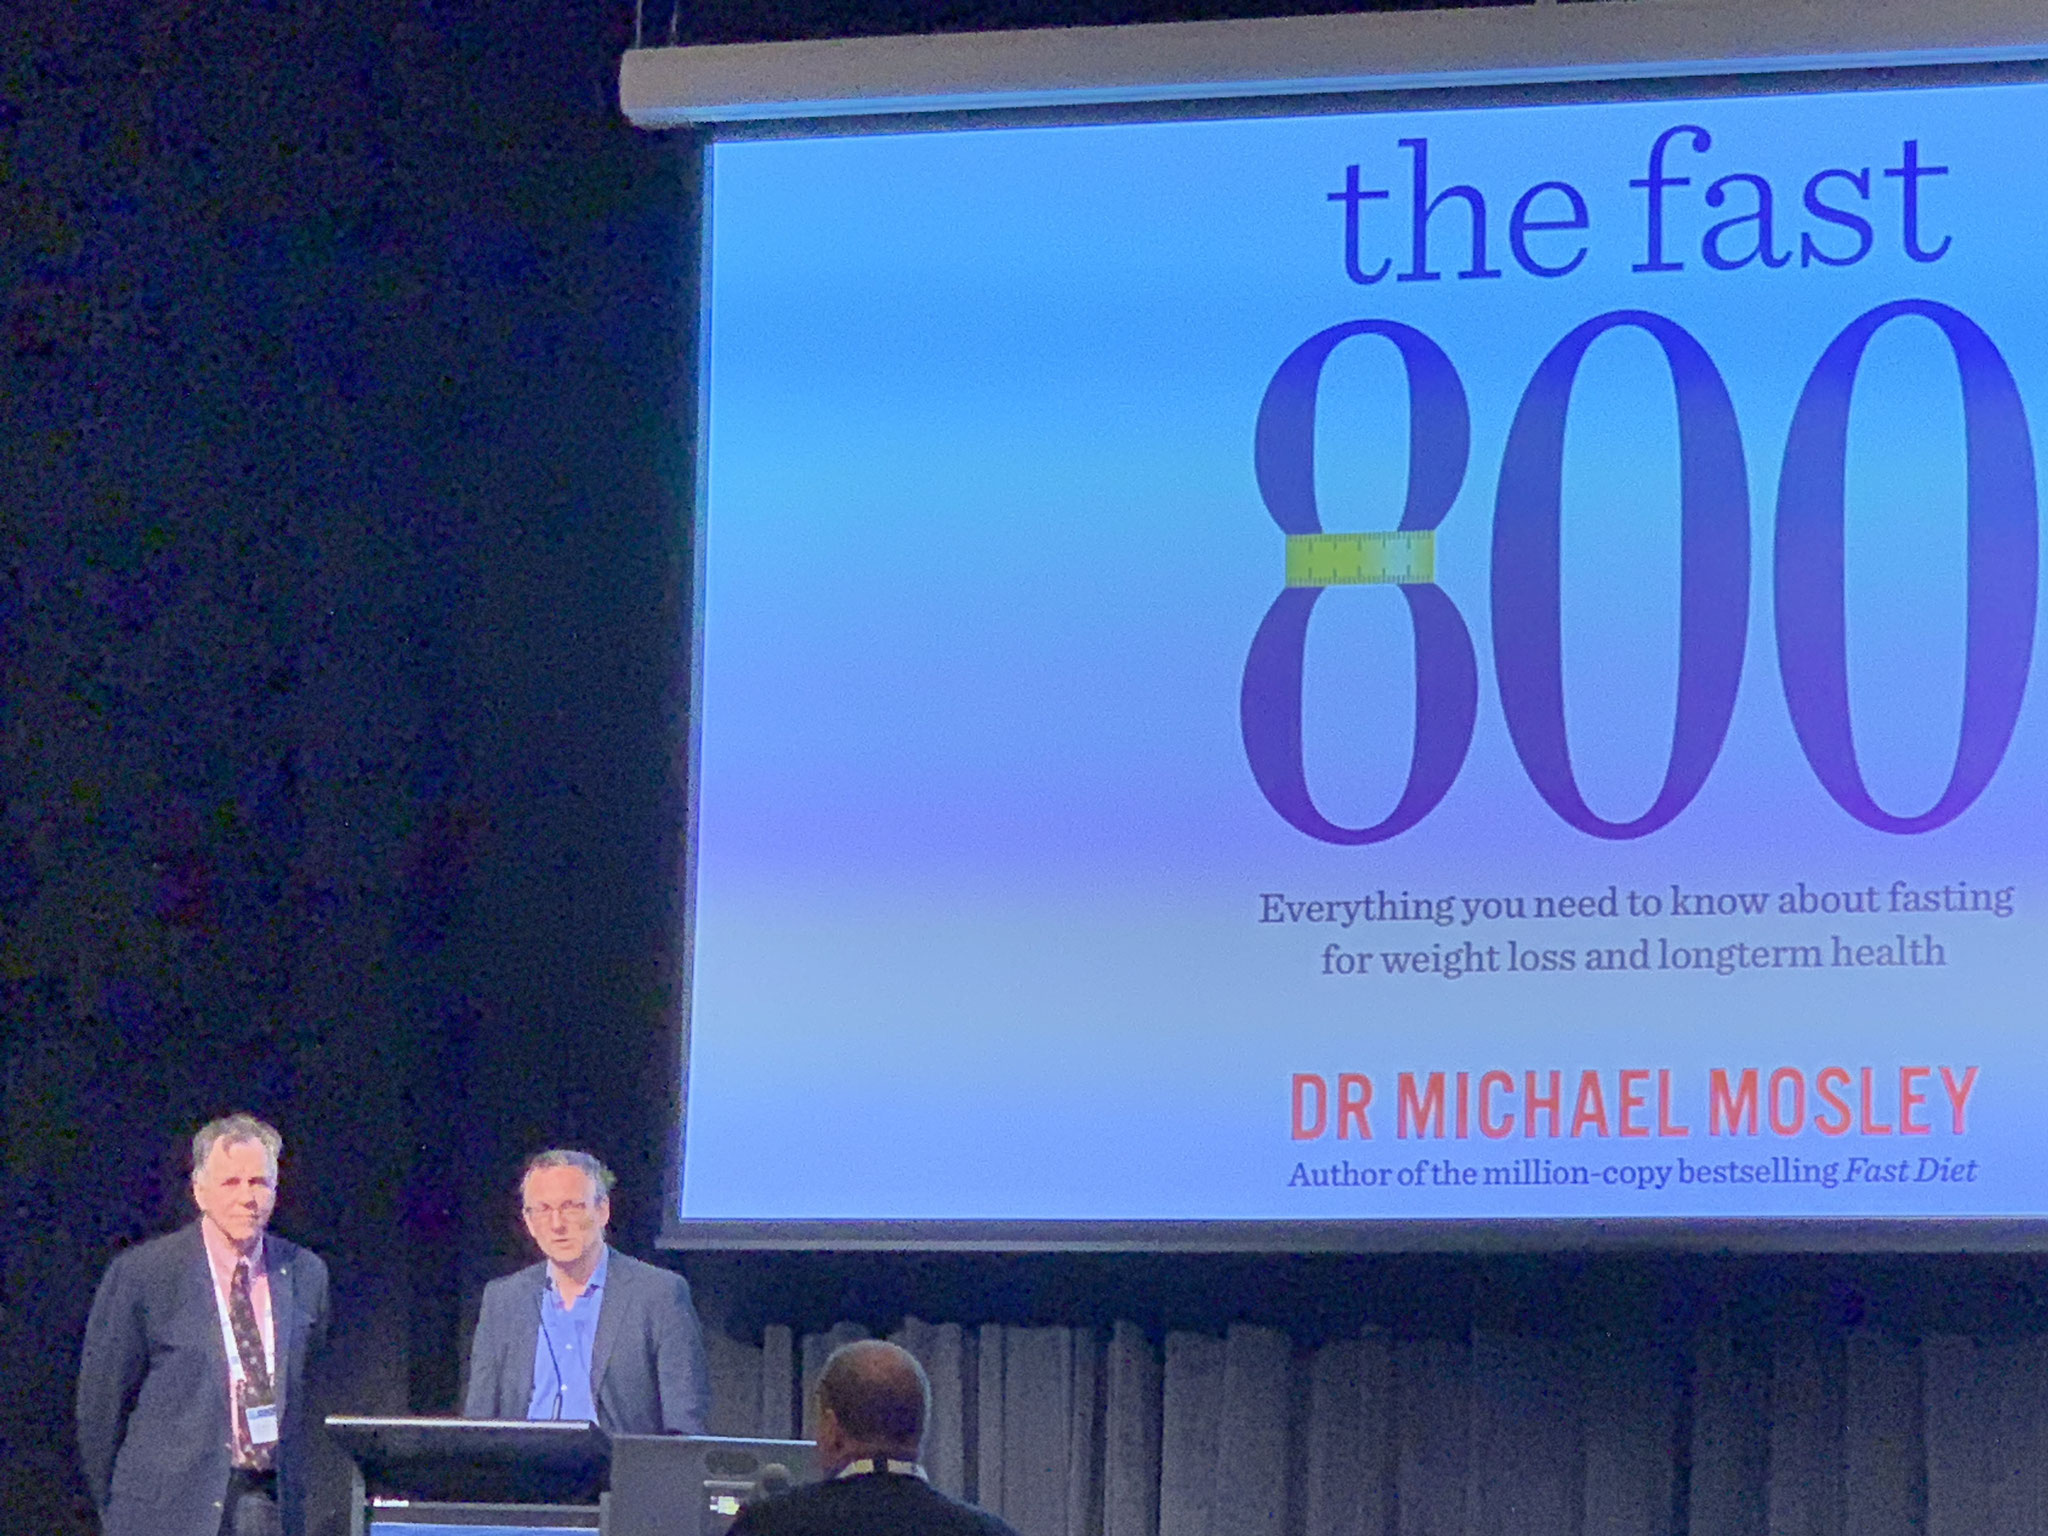 Prof Barry Marshall and Dr Michael Mosley 2019 at the Science on Swan Seminar